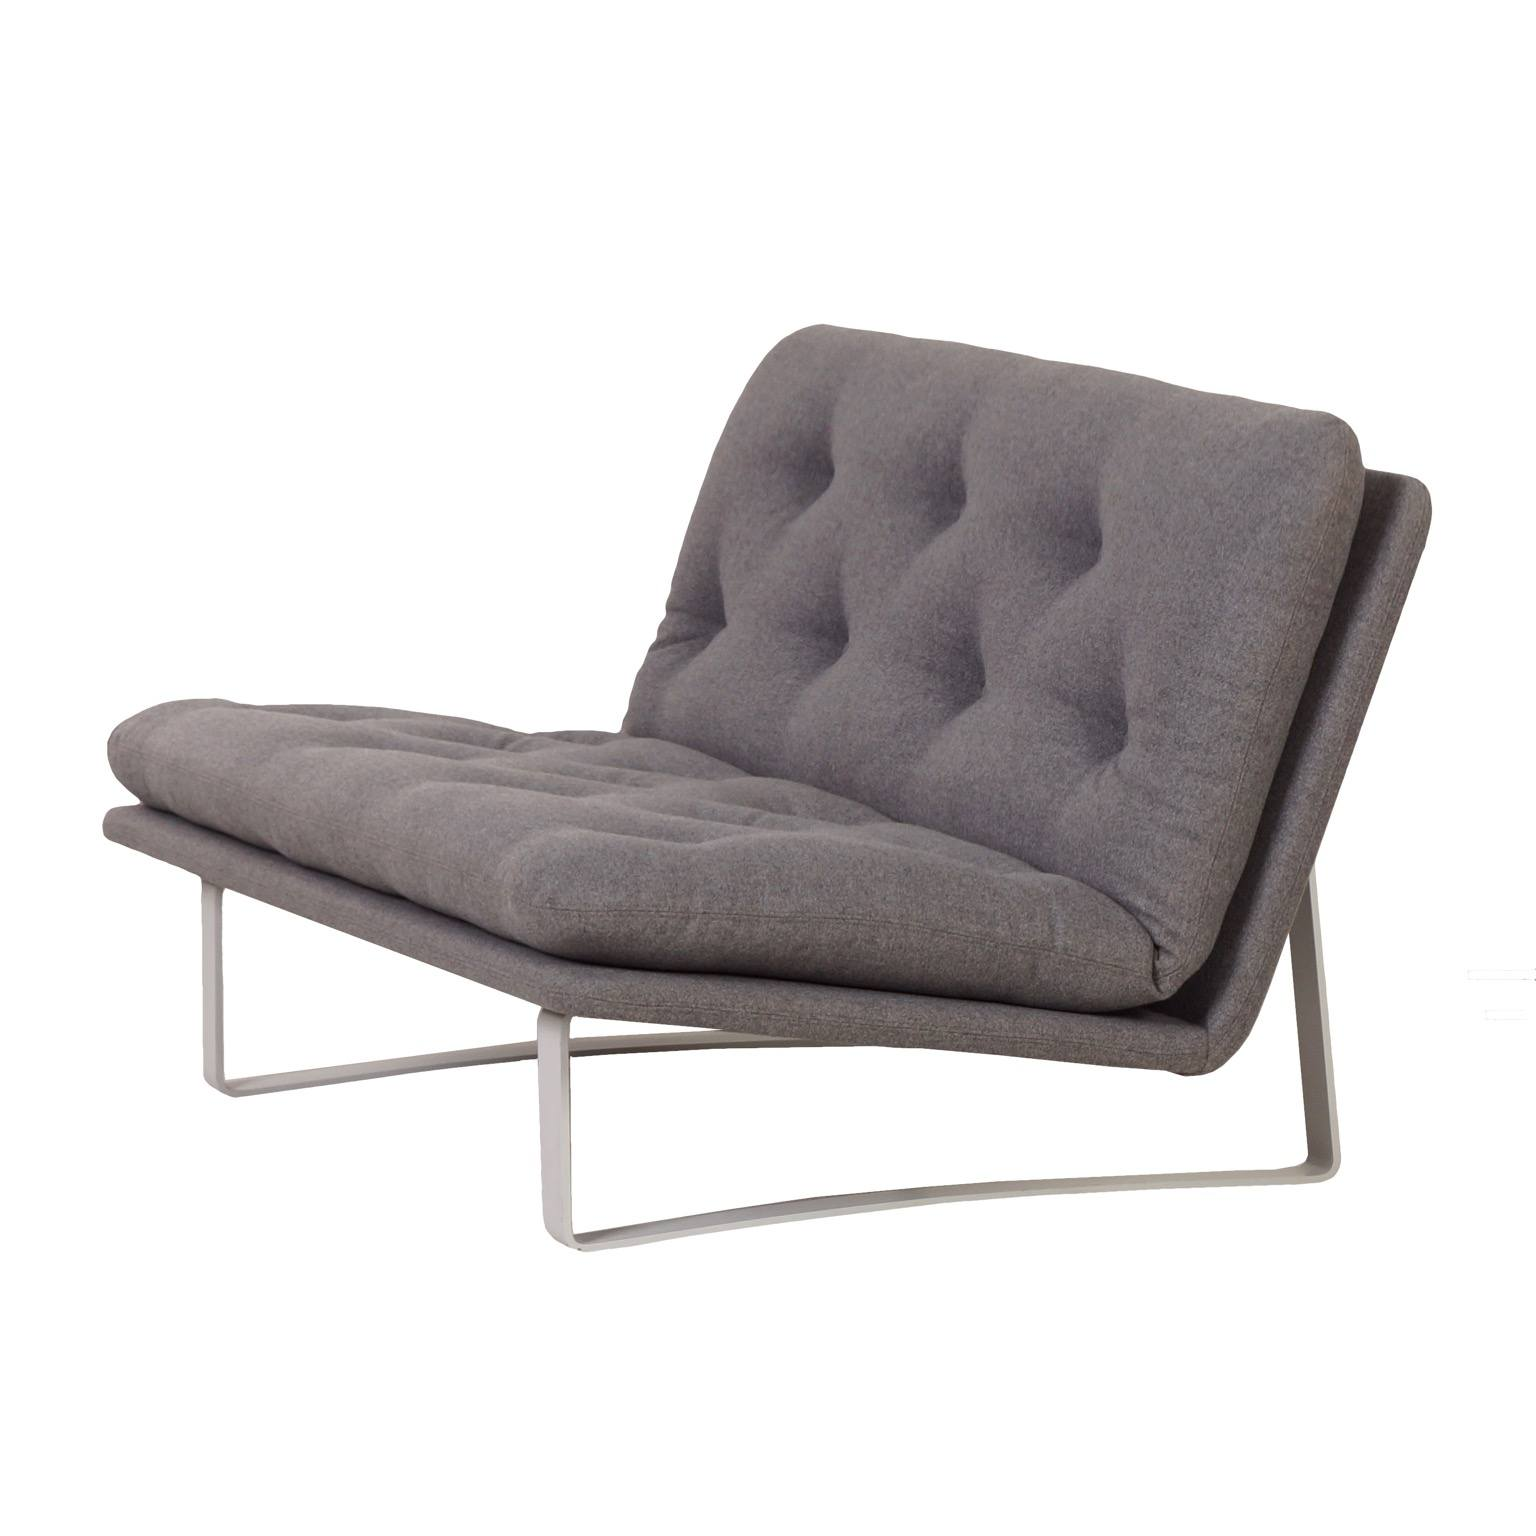 Artifort Design Bank.Grey C684 Sofa By Kho Liang Ie From Artifort 1960s